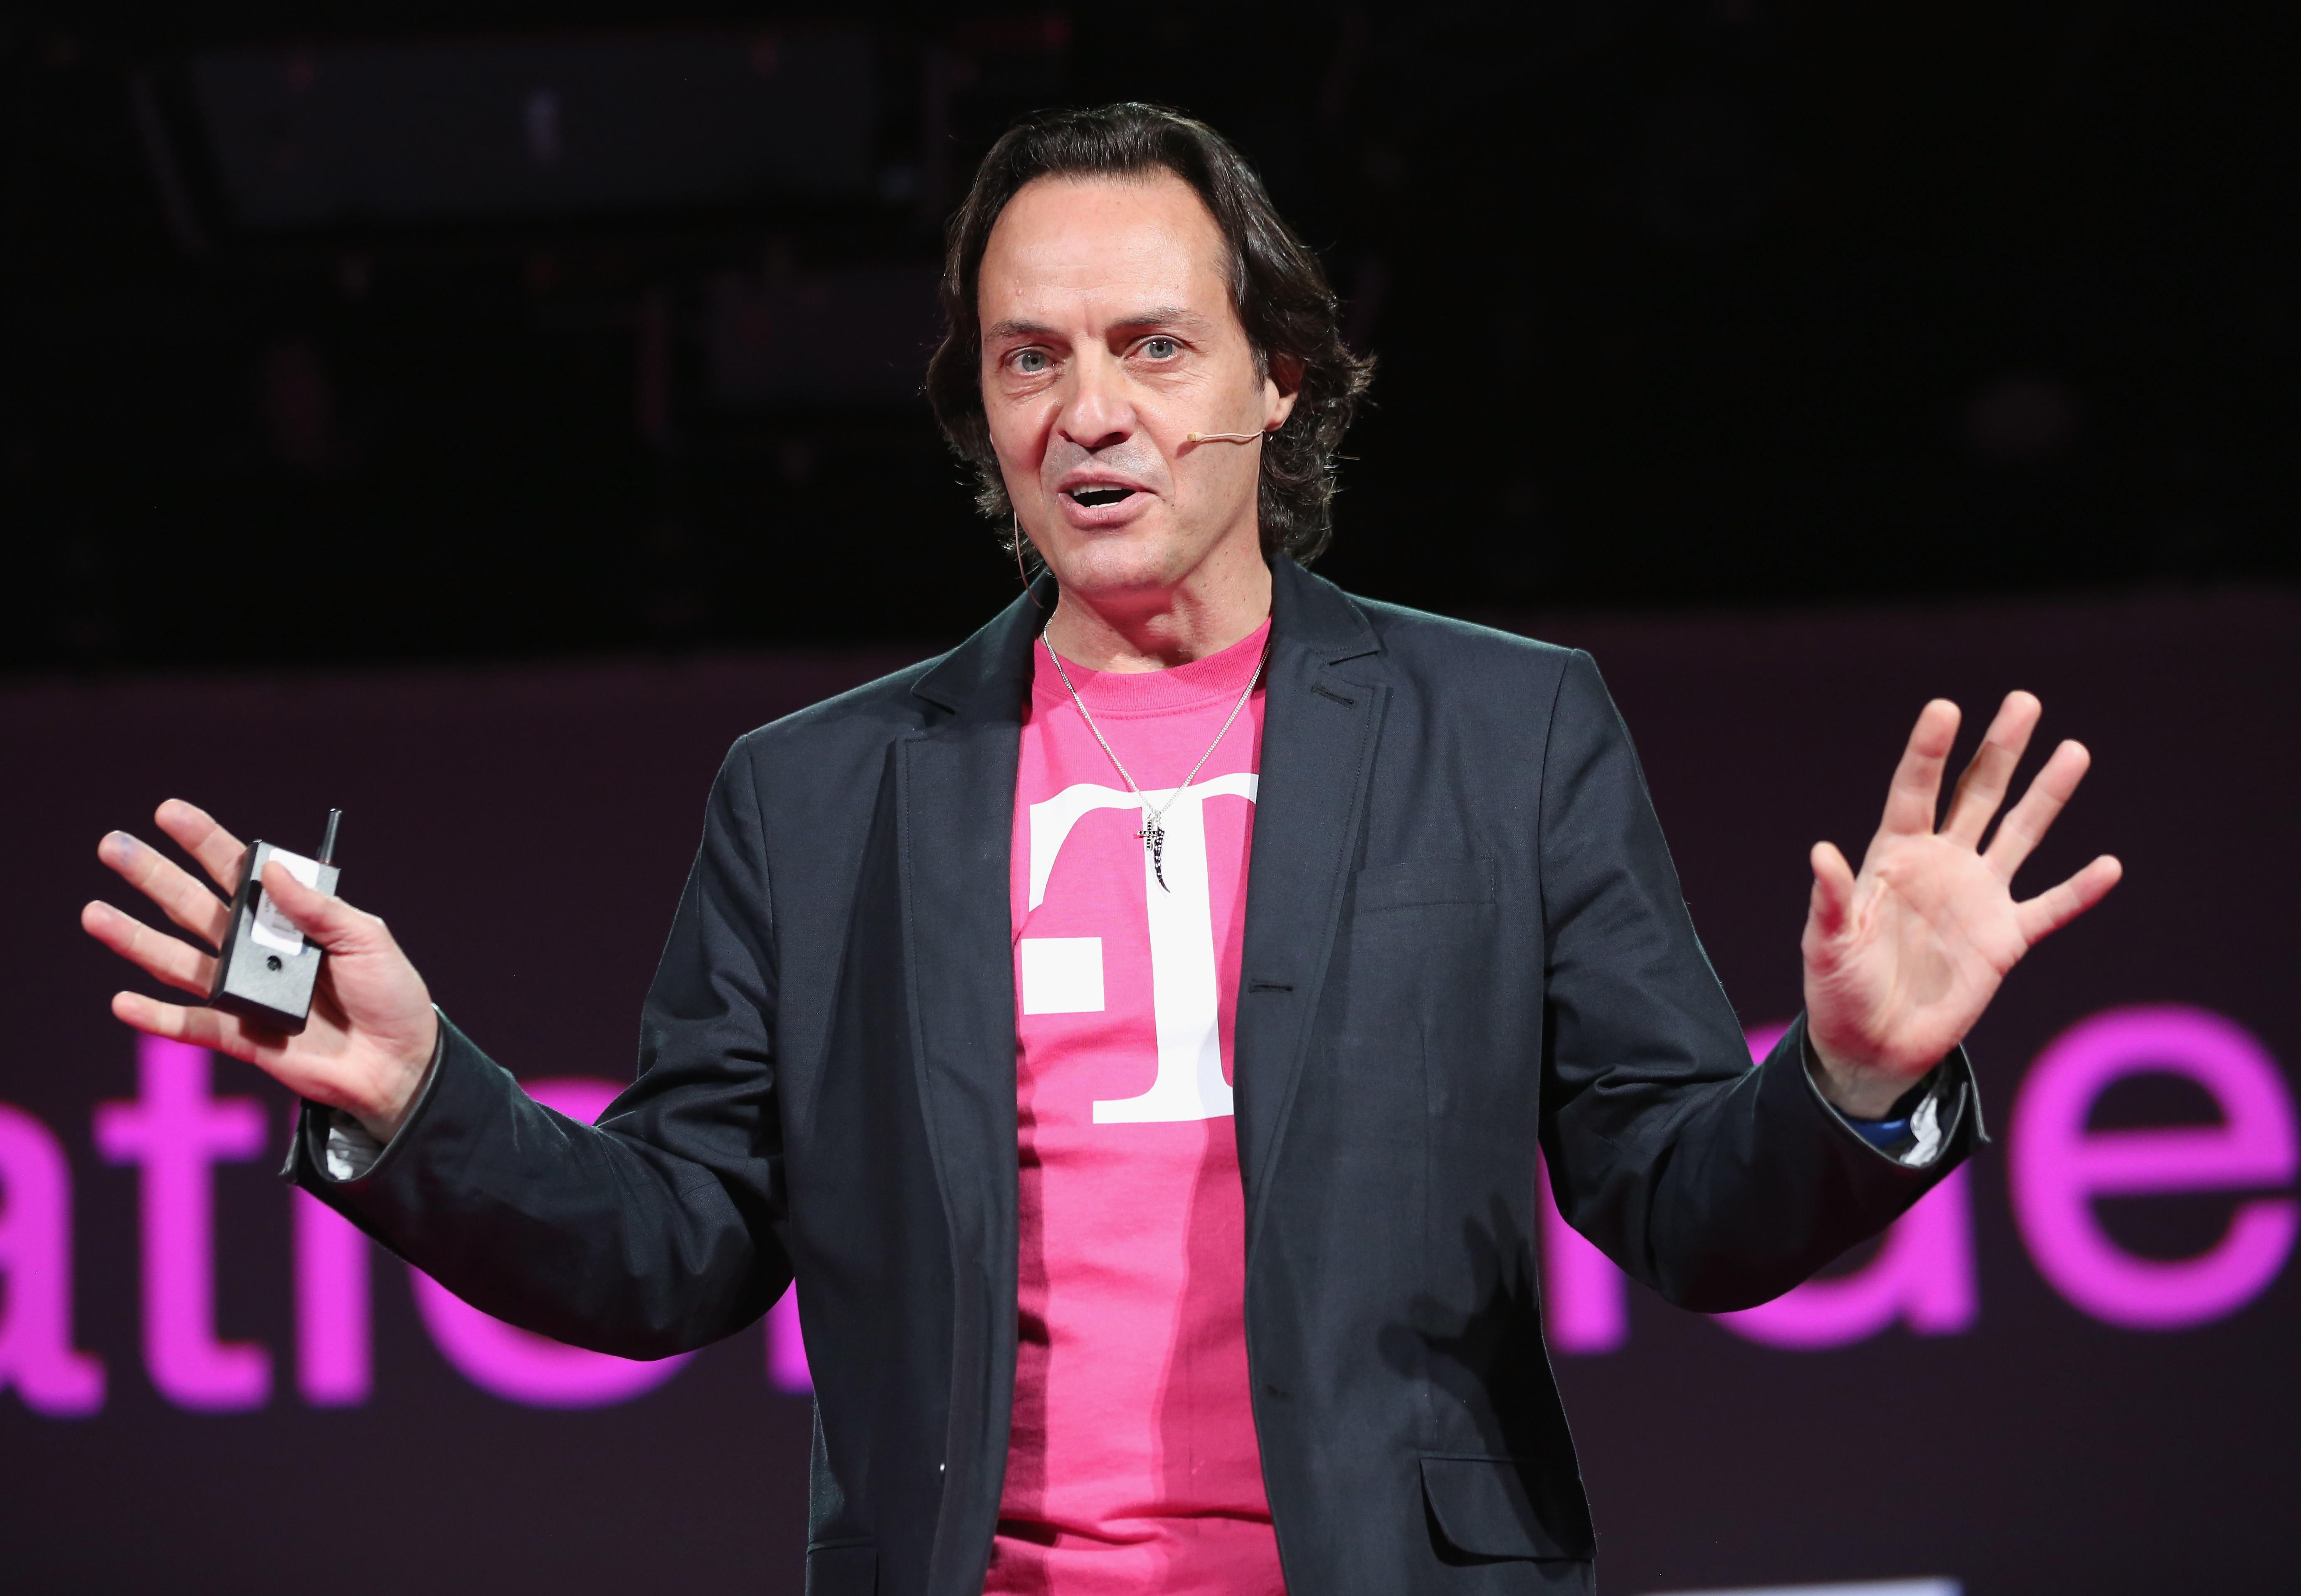 John Legere, CEO and president of T-Mobile USA, could become the next head of WeWork.